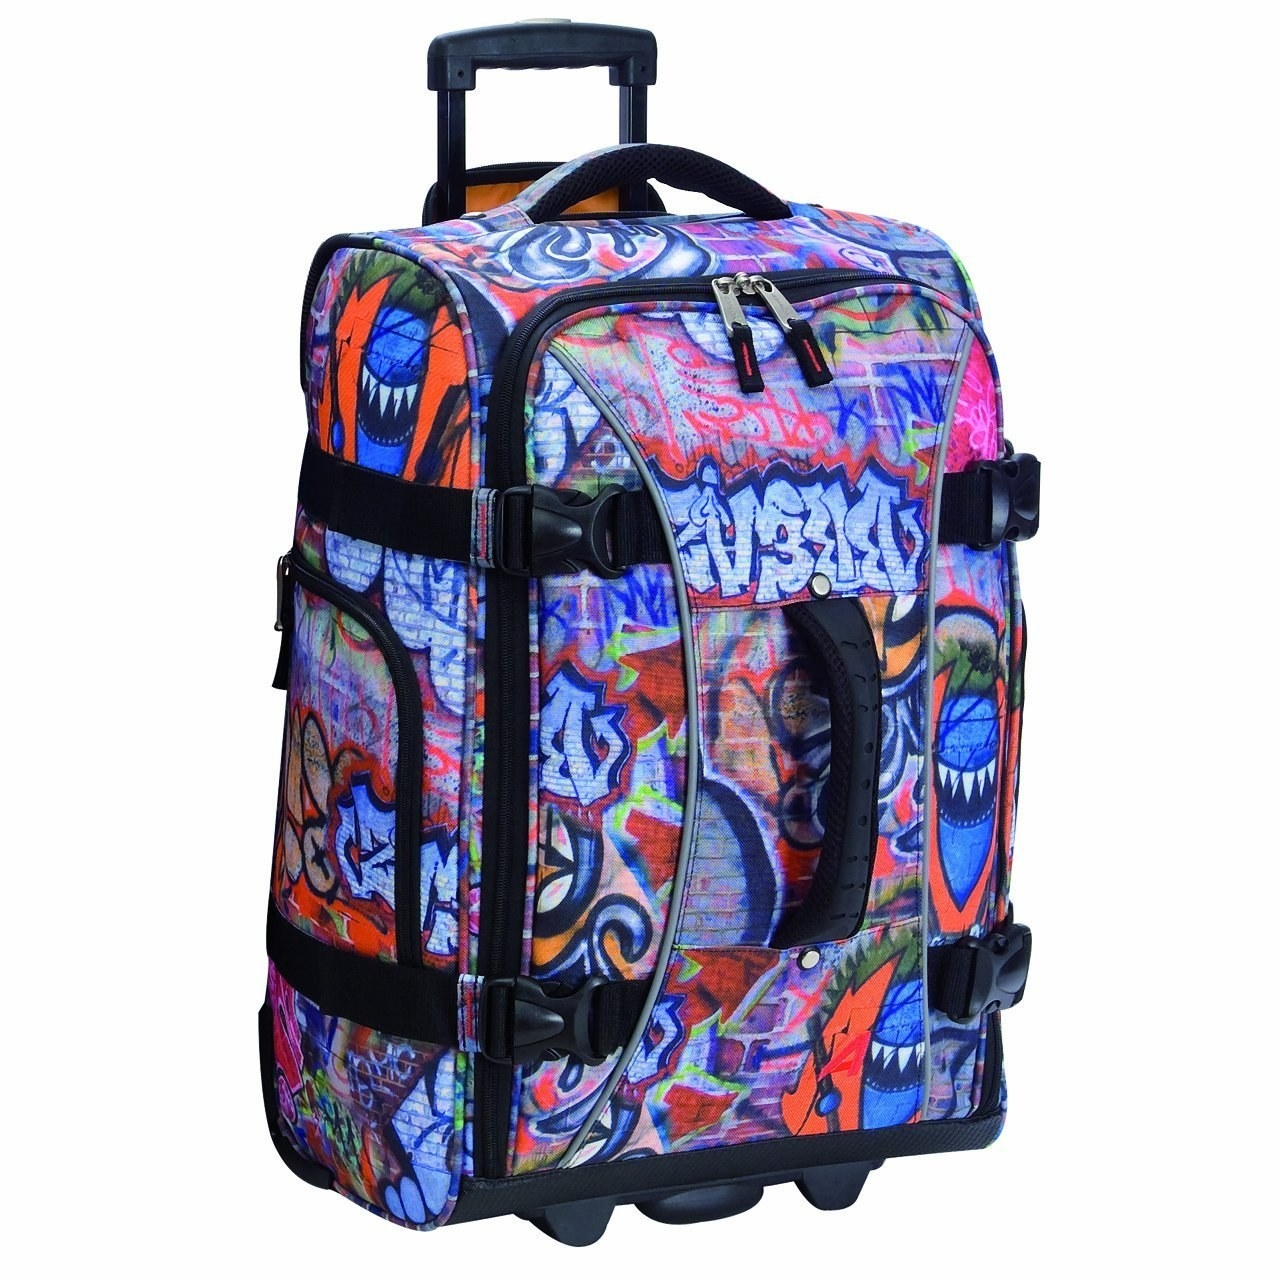 3e6dc1f2db1b 17 Amazing Suitcases That People Actually Swear By